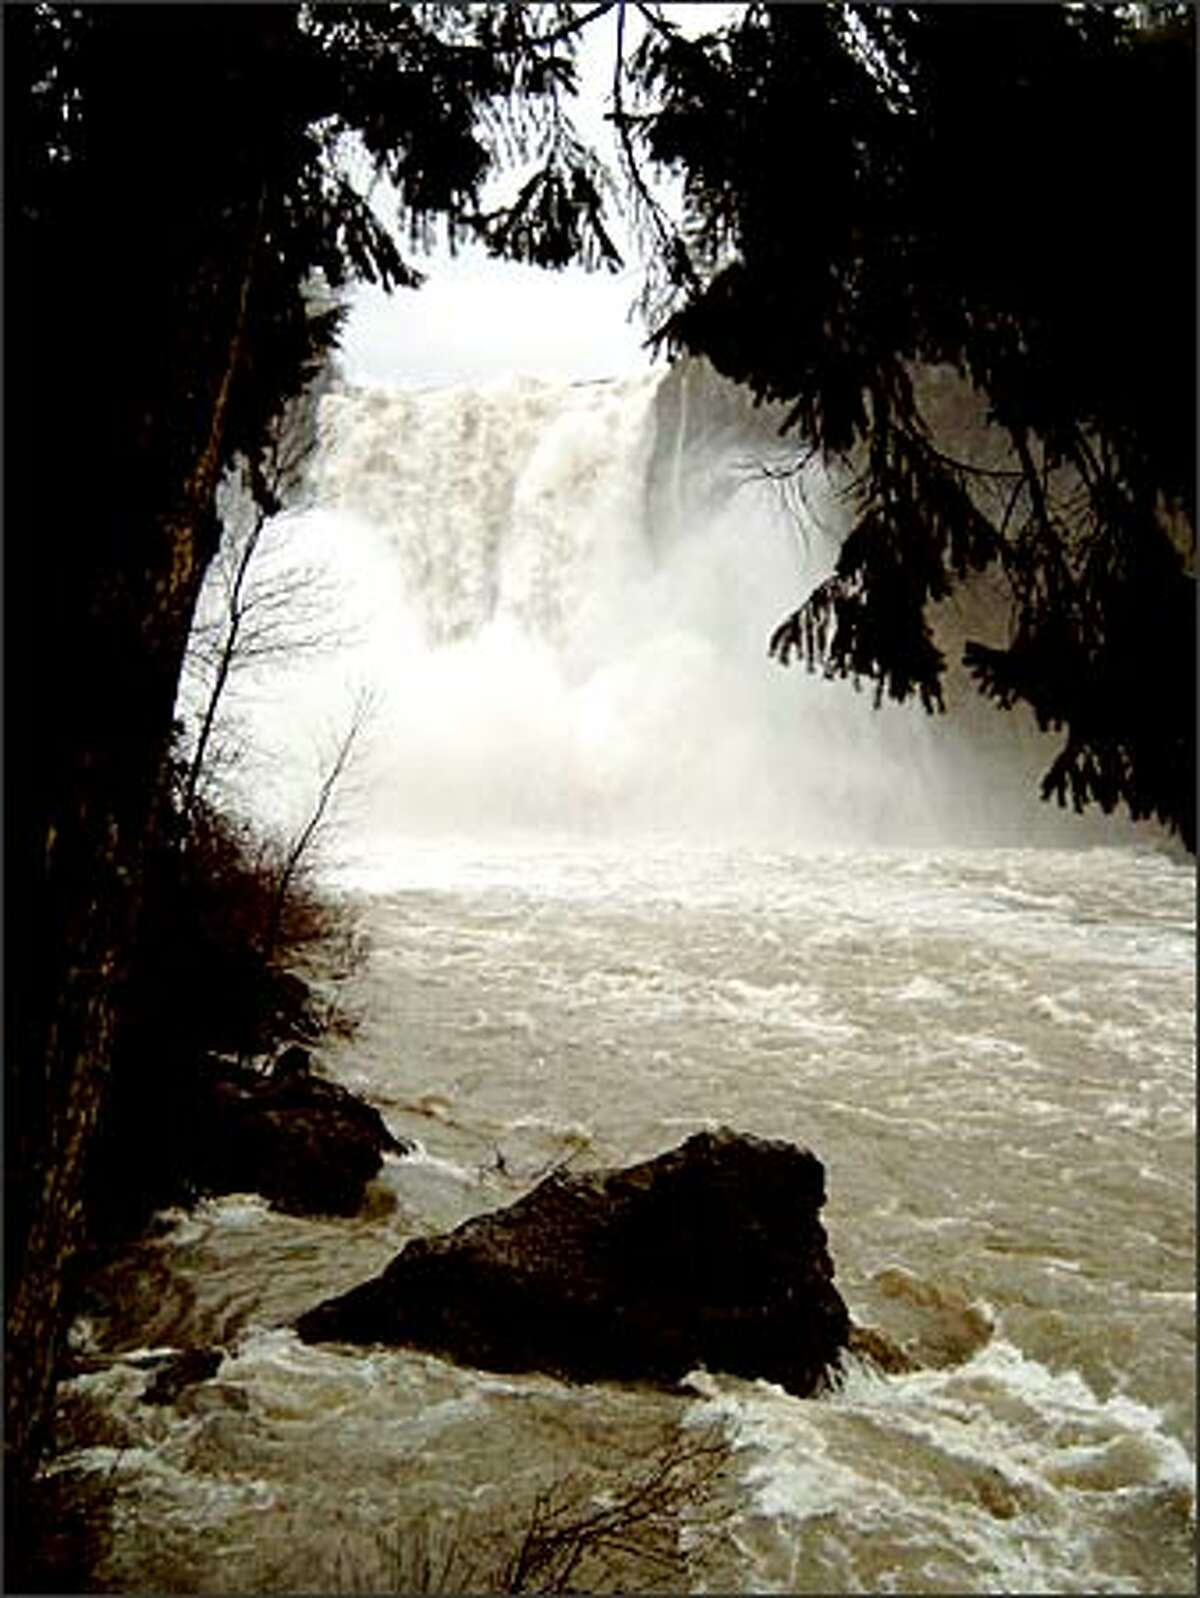 The spirituality felt by Native Americans at Snoqualmie Falls is palpable after a heavy rain.